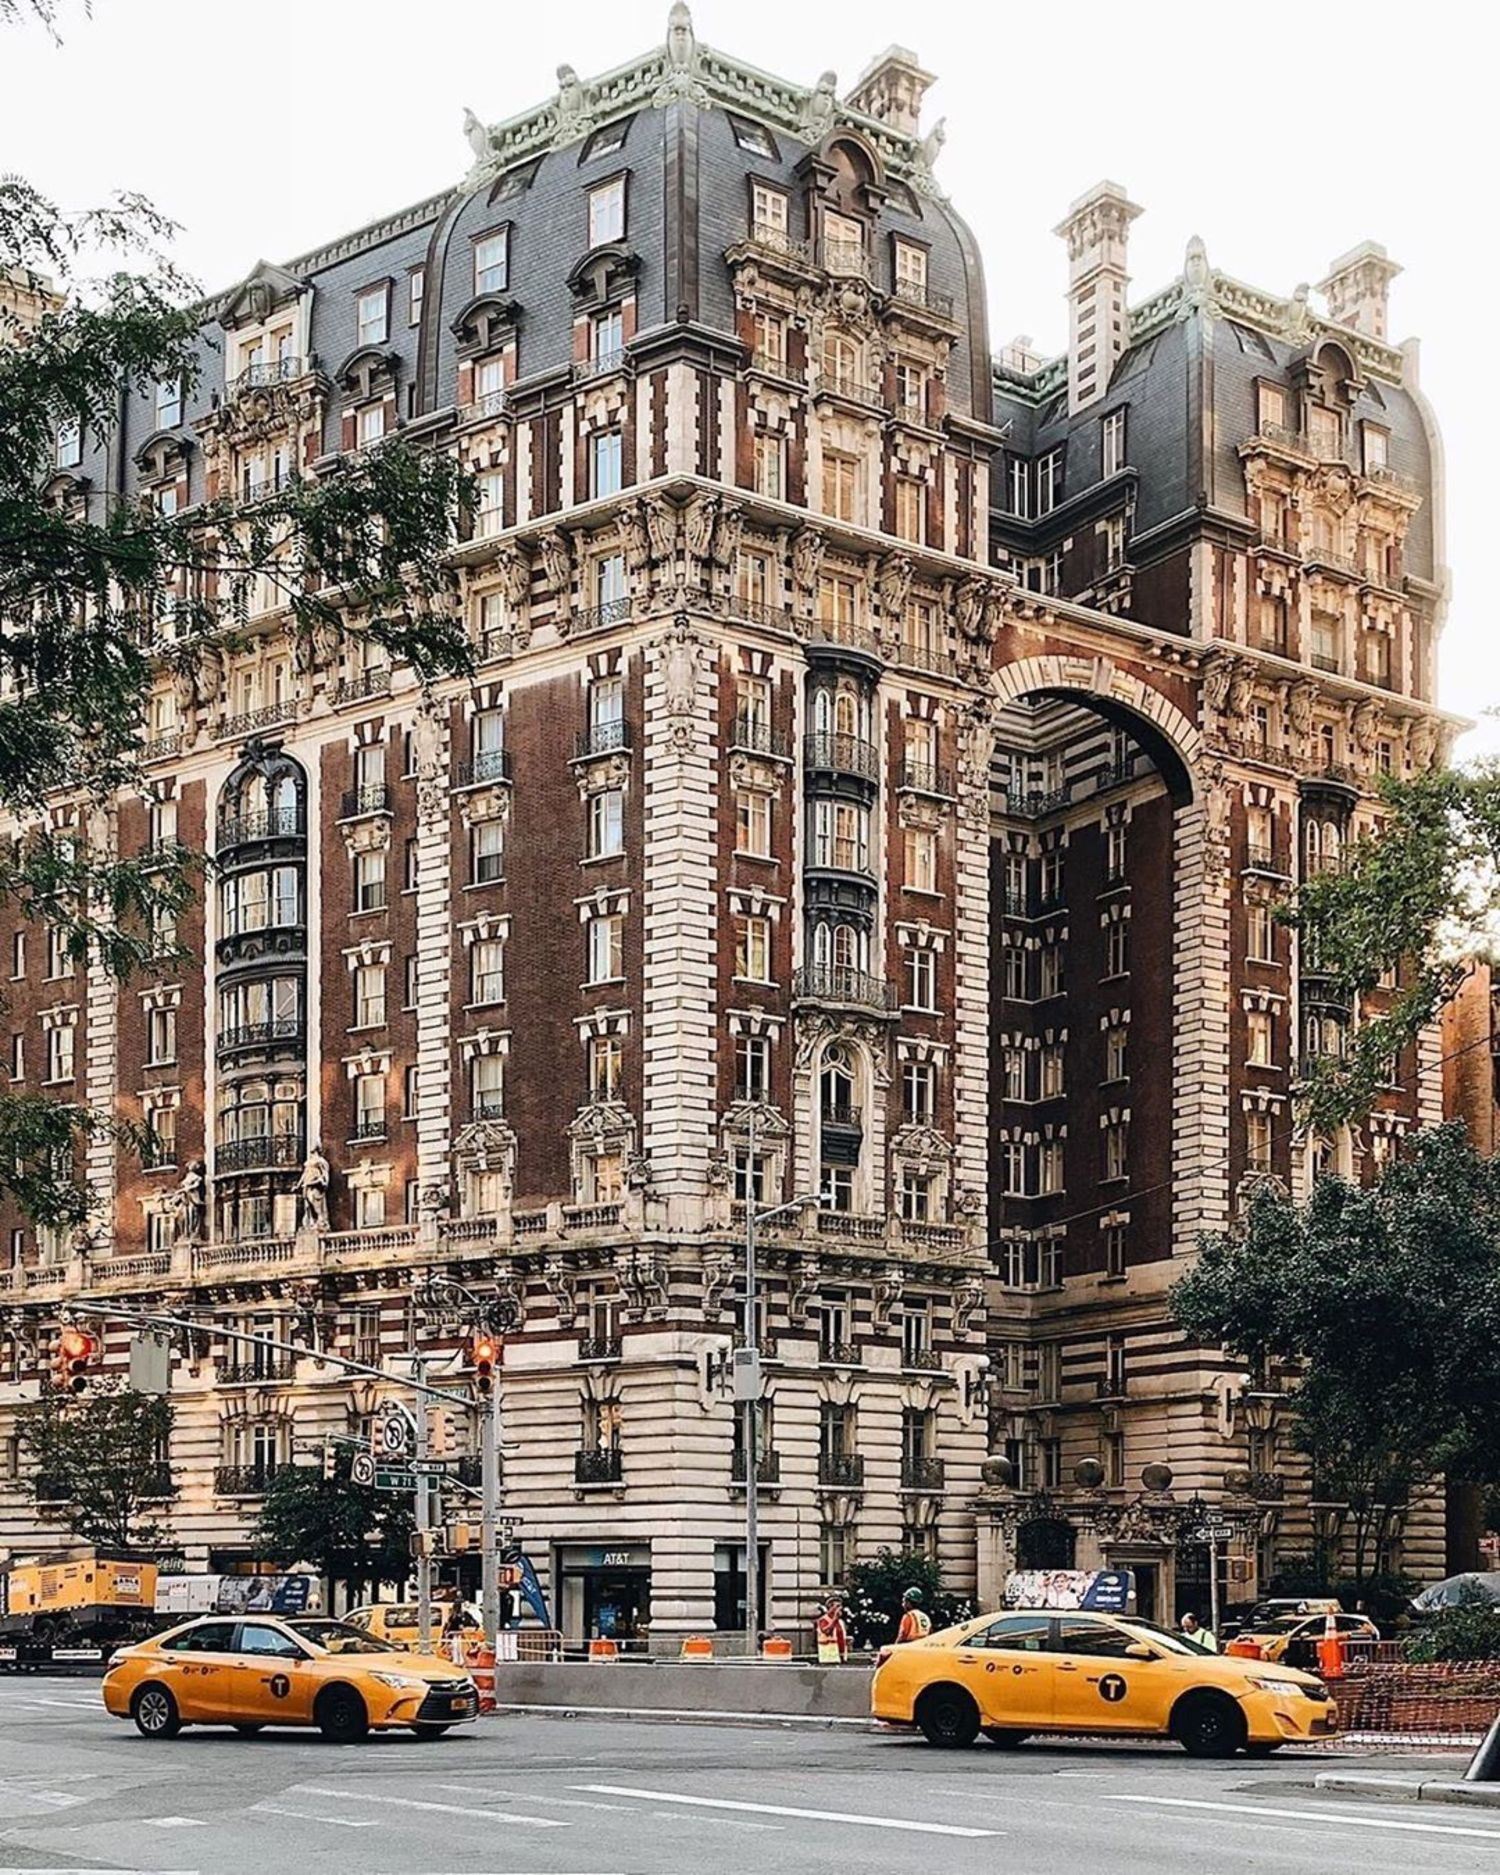 Upper West Side, Manhattan.